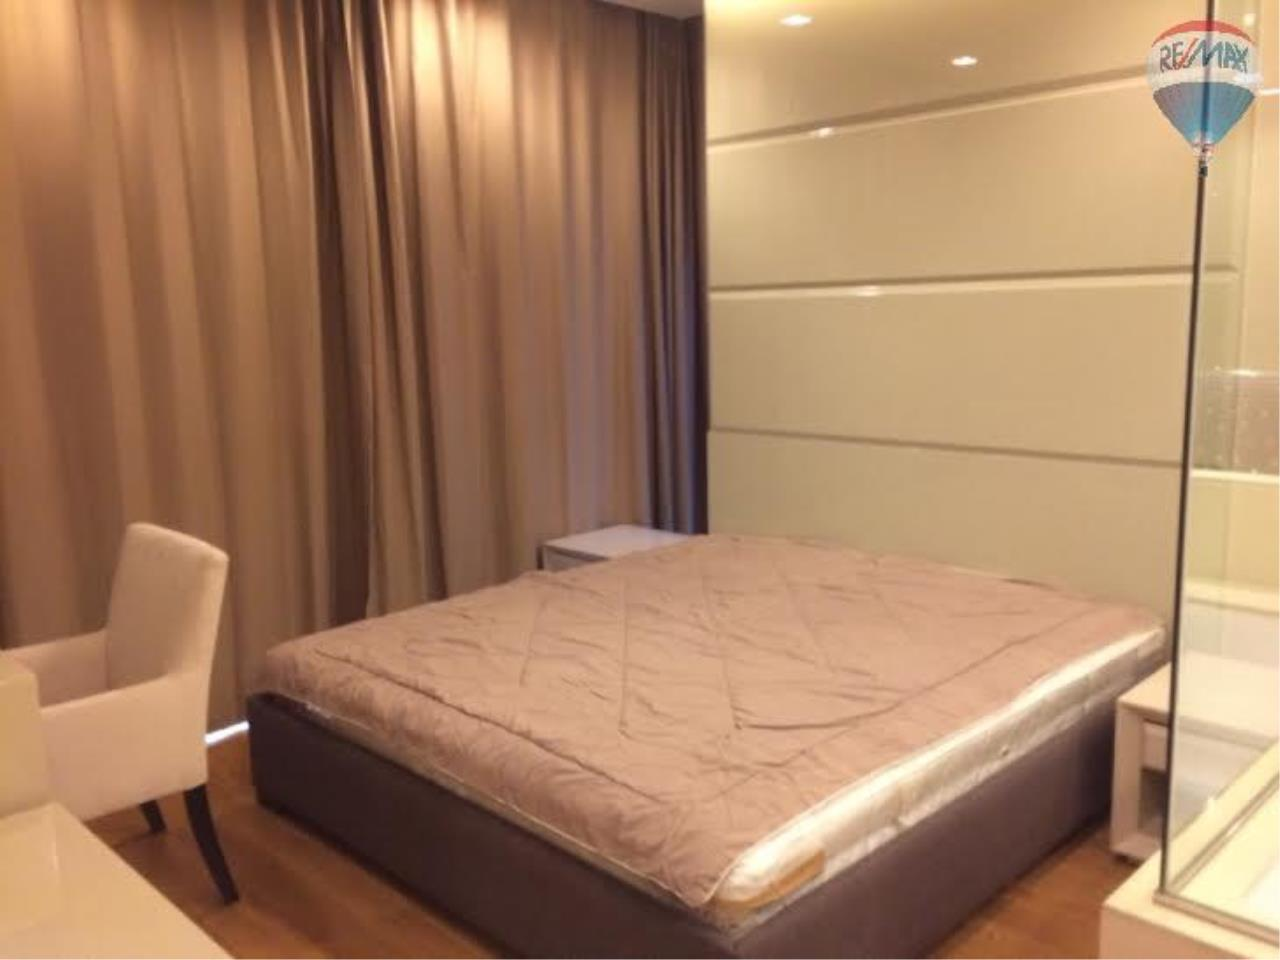 RE/MAX Properties Agency's 2 Bedrooms 80.5 Sq.M. for renting 60K in The Address Sathorn 8